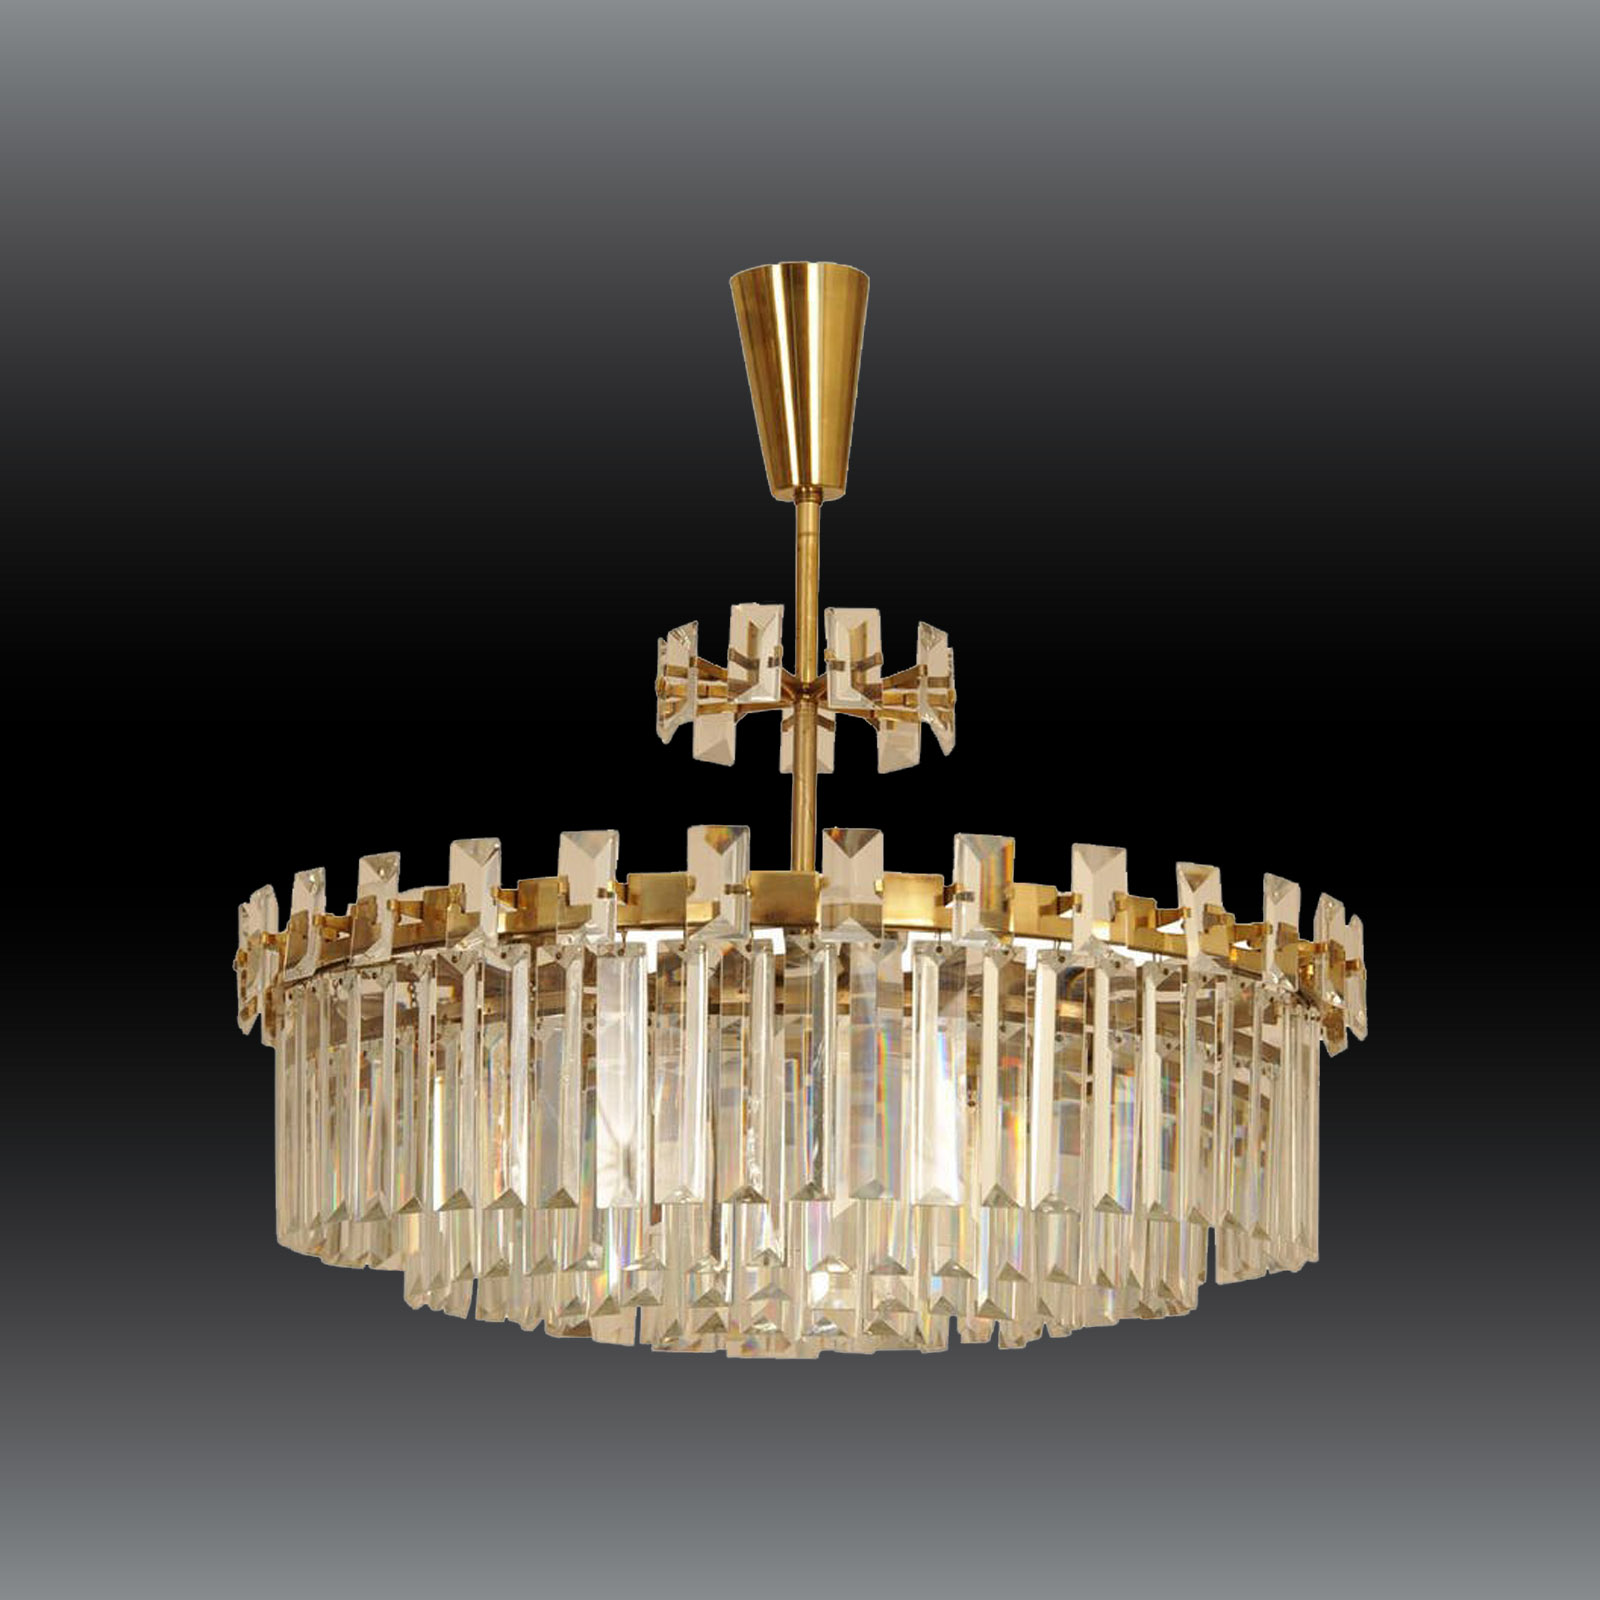 Image of: Woka Lamps Vienna 60056 Mid Century Modern Crystal Chandelier